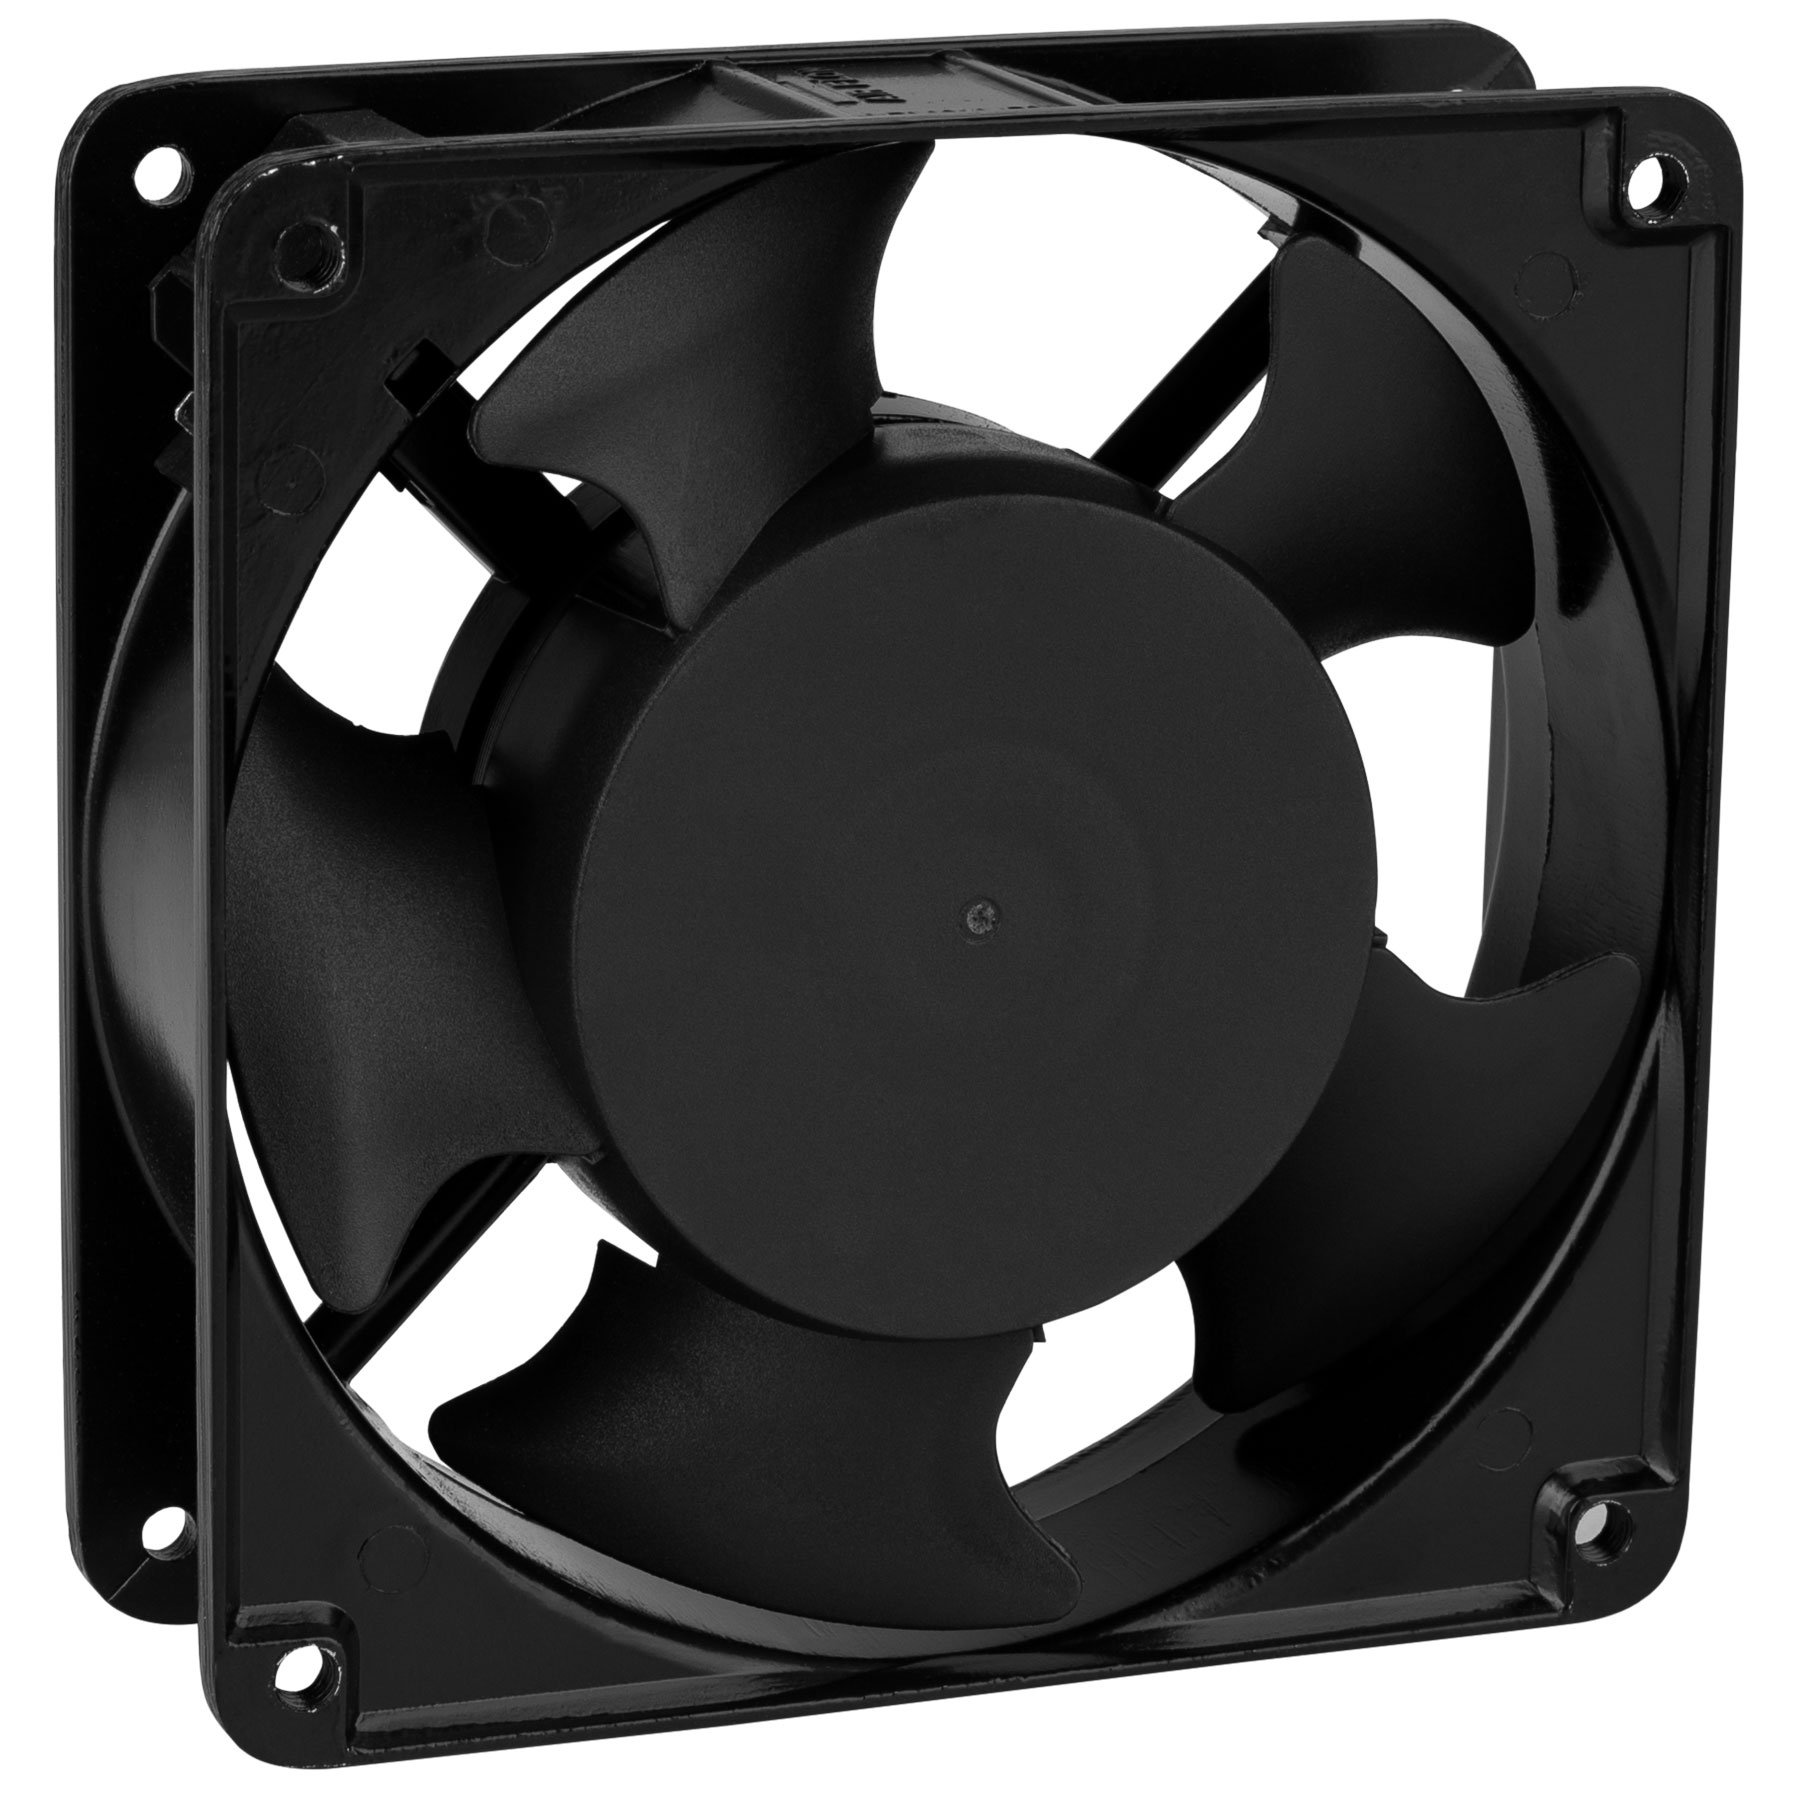 Parts Express Muffin Style Axial Cooling Fan 120 VAC 120 x 120 x 38mm 100 CFM by Parts Express (Image #2)